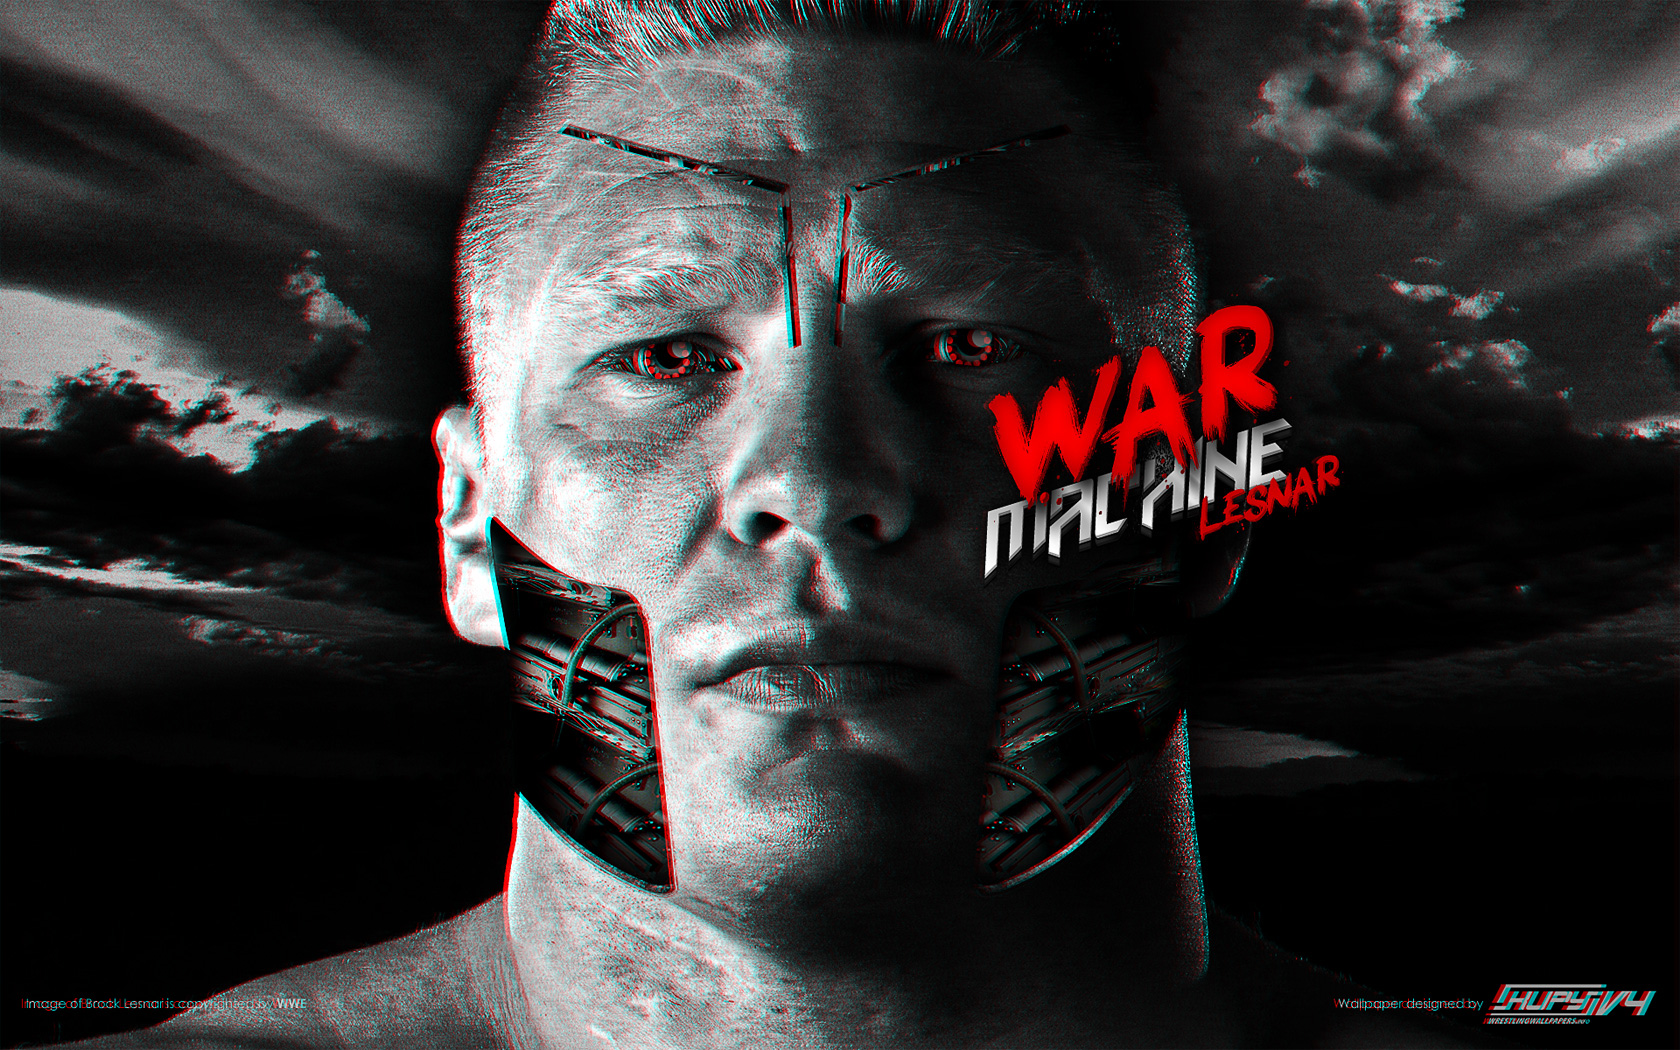 Him Iphone Wallpaper New Quot War Machine Quot Brock Lesnar Wallpaper Kupy Wrestling